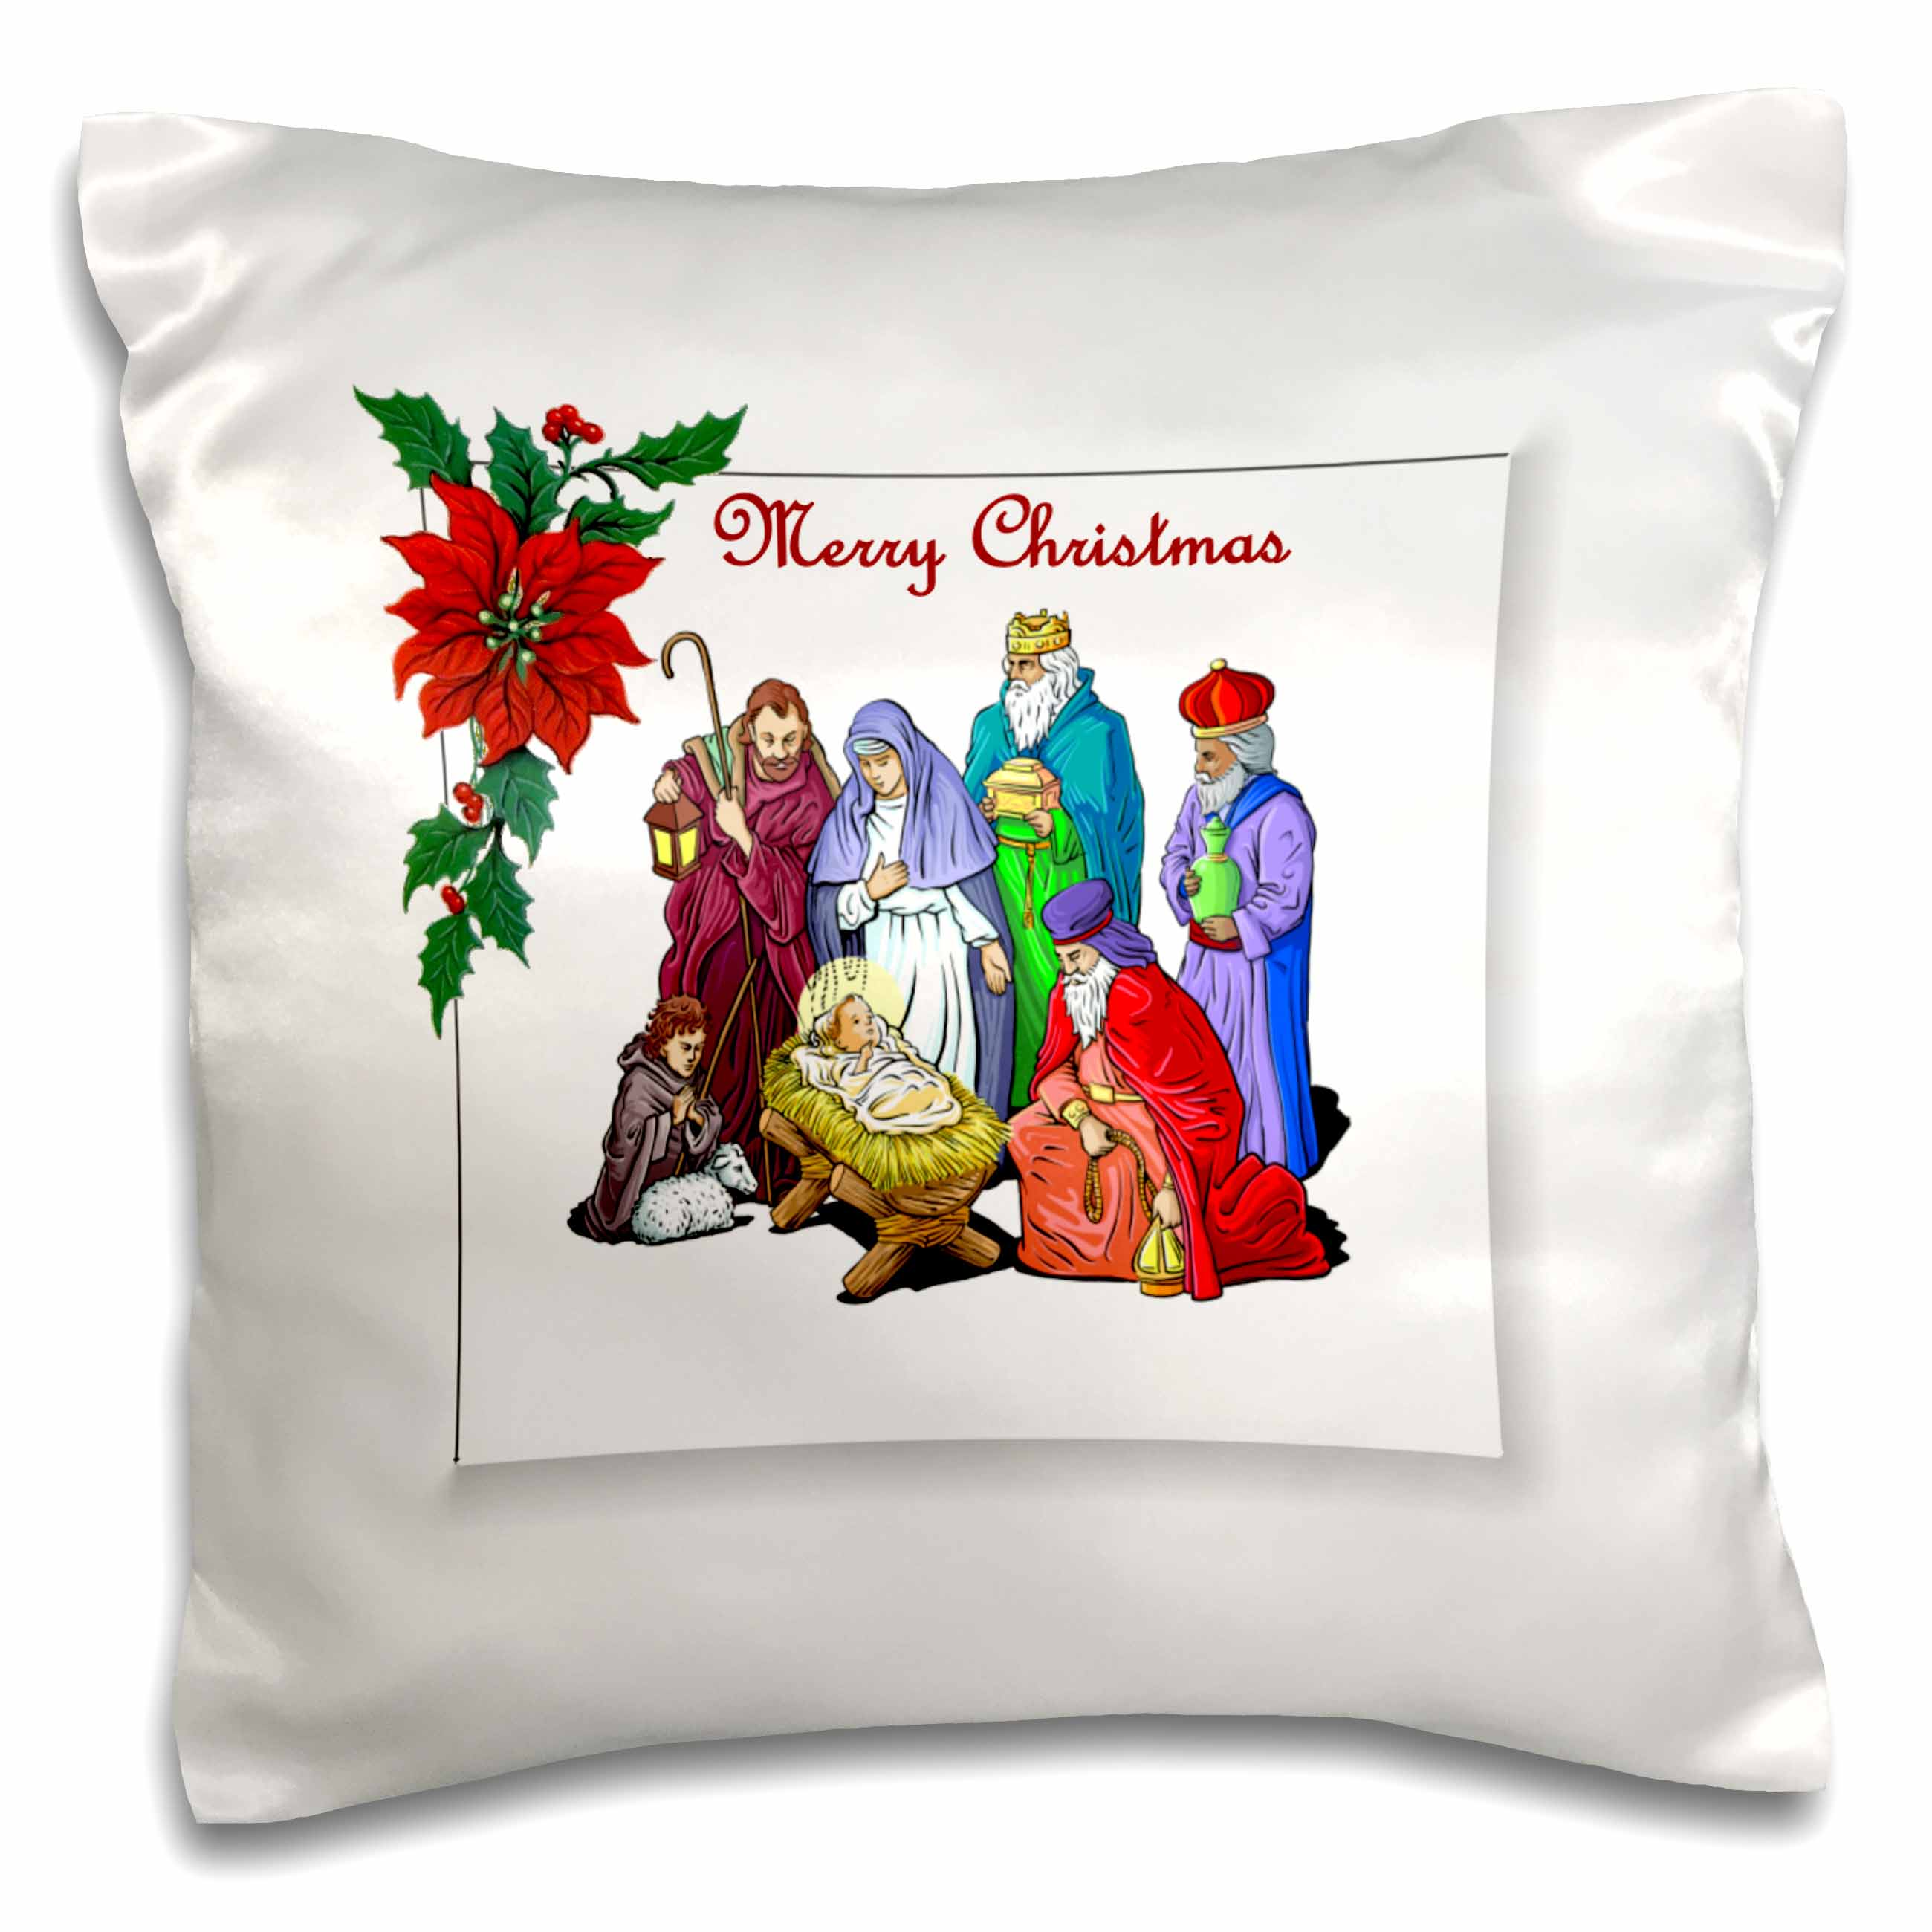 3dRose Nativity Merry Christmas, Pillow Case, 16 by 16-inch